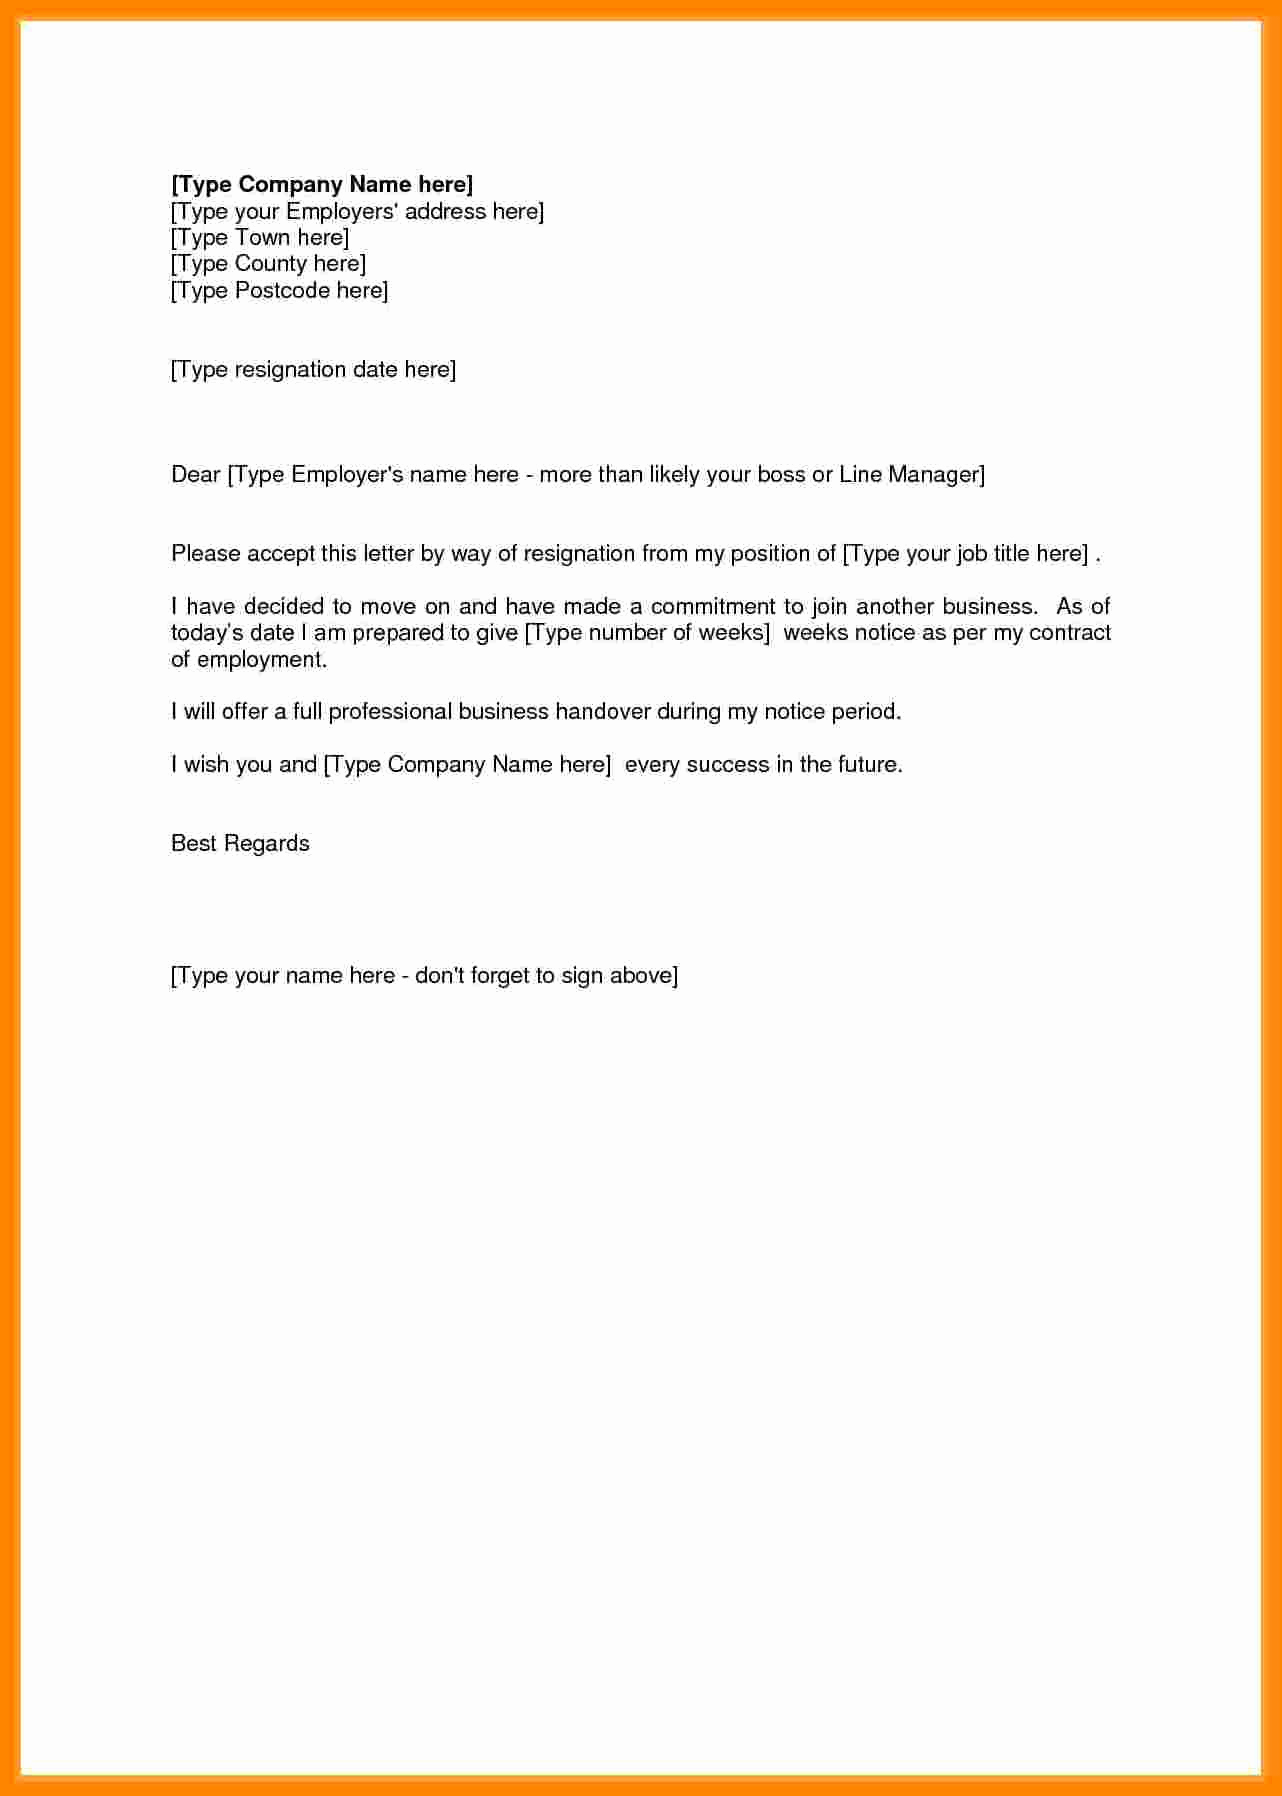 Resign Letter Short Notice Lovely 7 Resignation Letter Short Notice